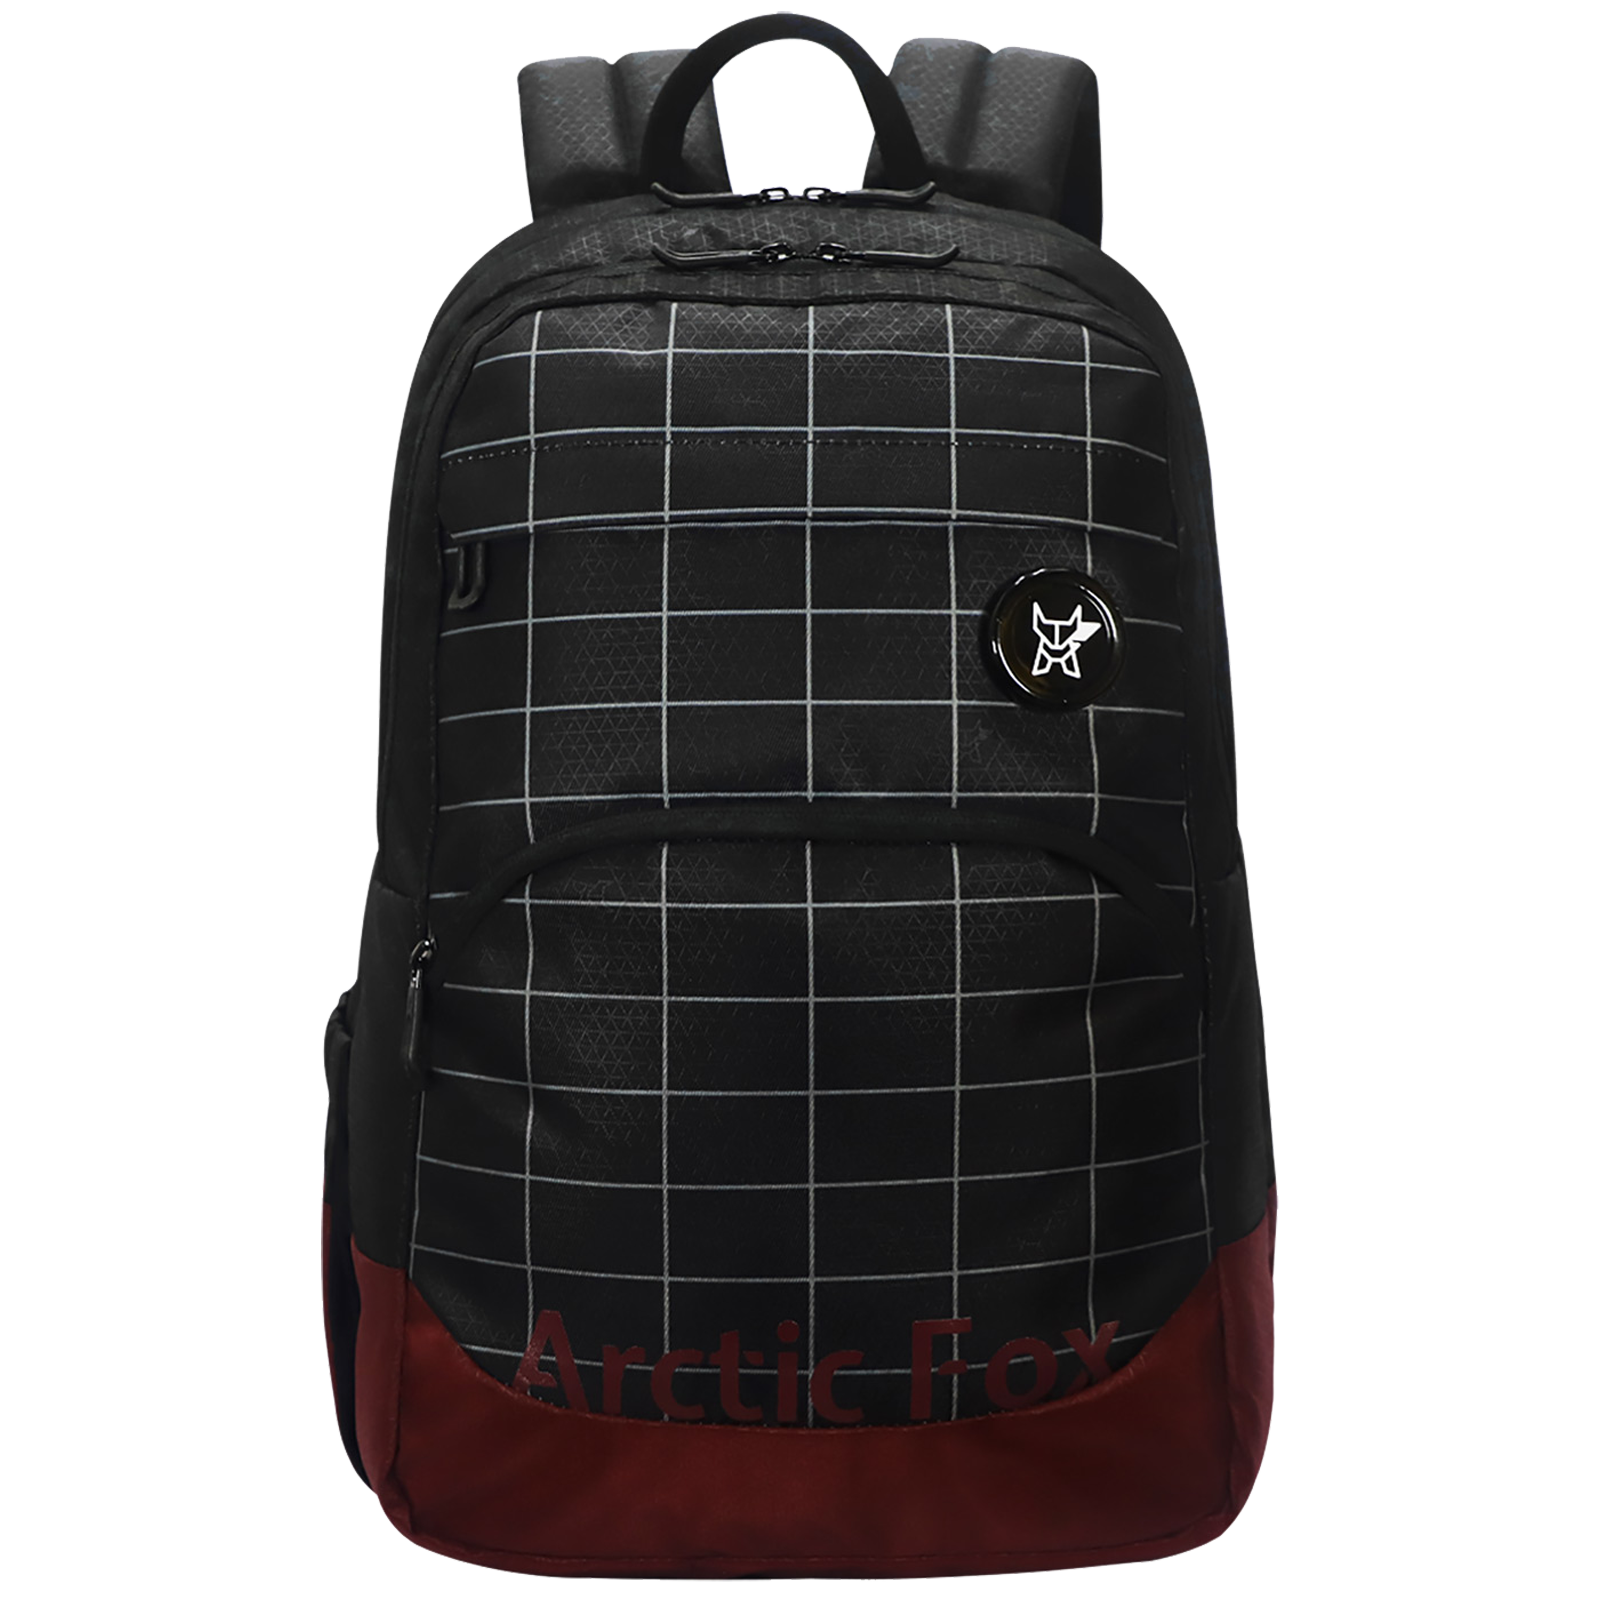 Arctic Fox Grid 33 Litres Polyester Backpack for 15 Inch Laptop (Spacious Padded Compartment, FUNBPKBLKWZ092033, Black)_1